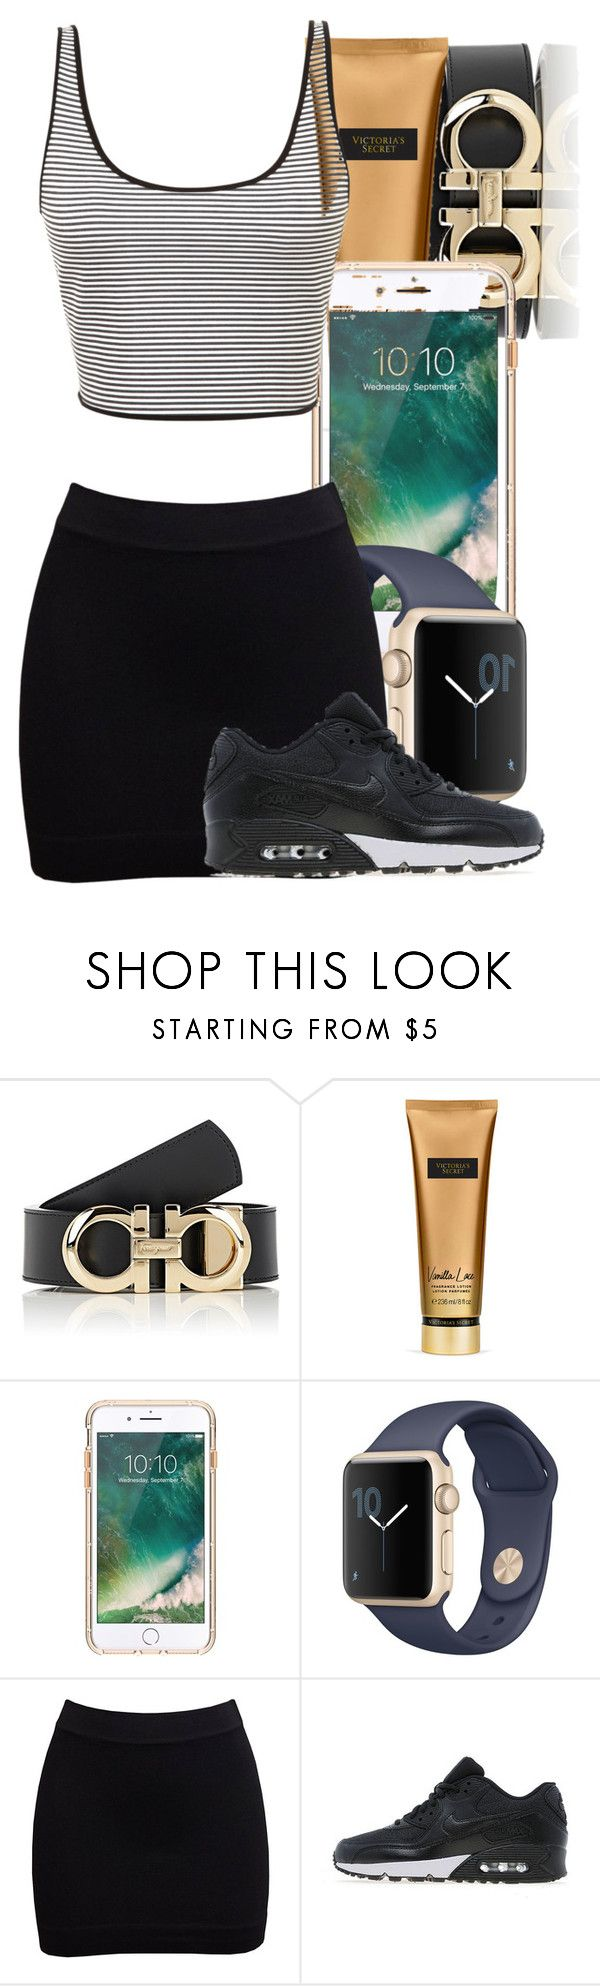 """one"" by monet-princessa ❤ liked on Polyvore featuring Salvatore Ferragamo, Victoria's Secret, Griffin, NIKE and Clover Canyon"